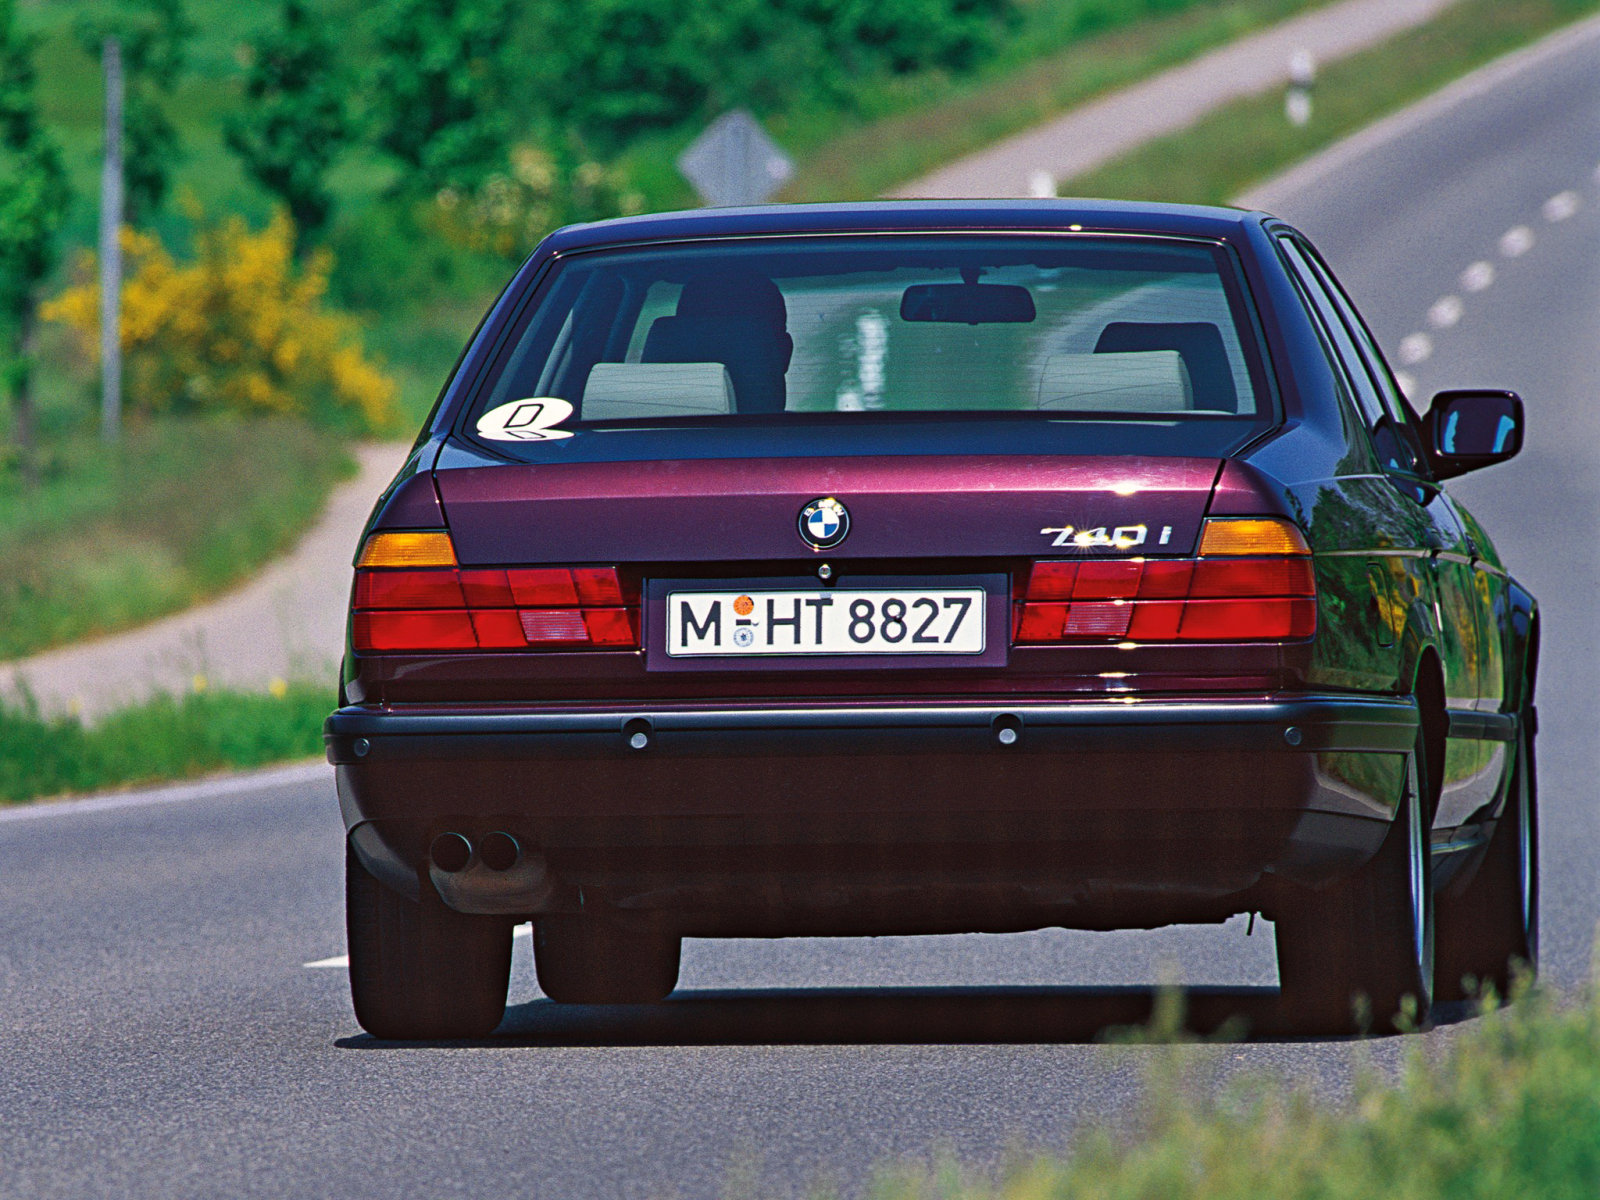 BMW 7 series 730i 1992 photo - 7